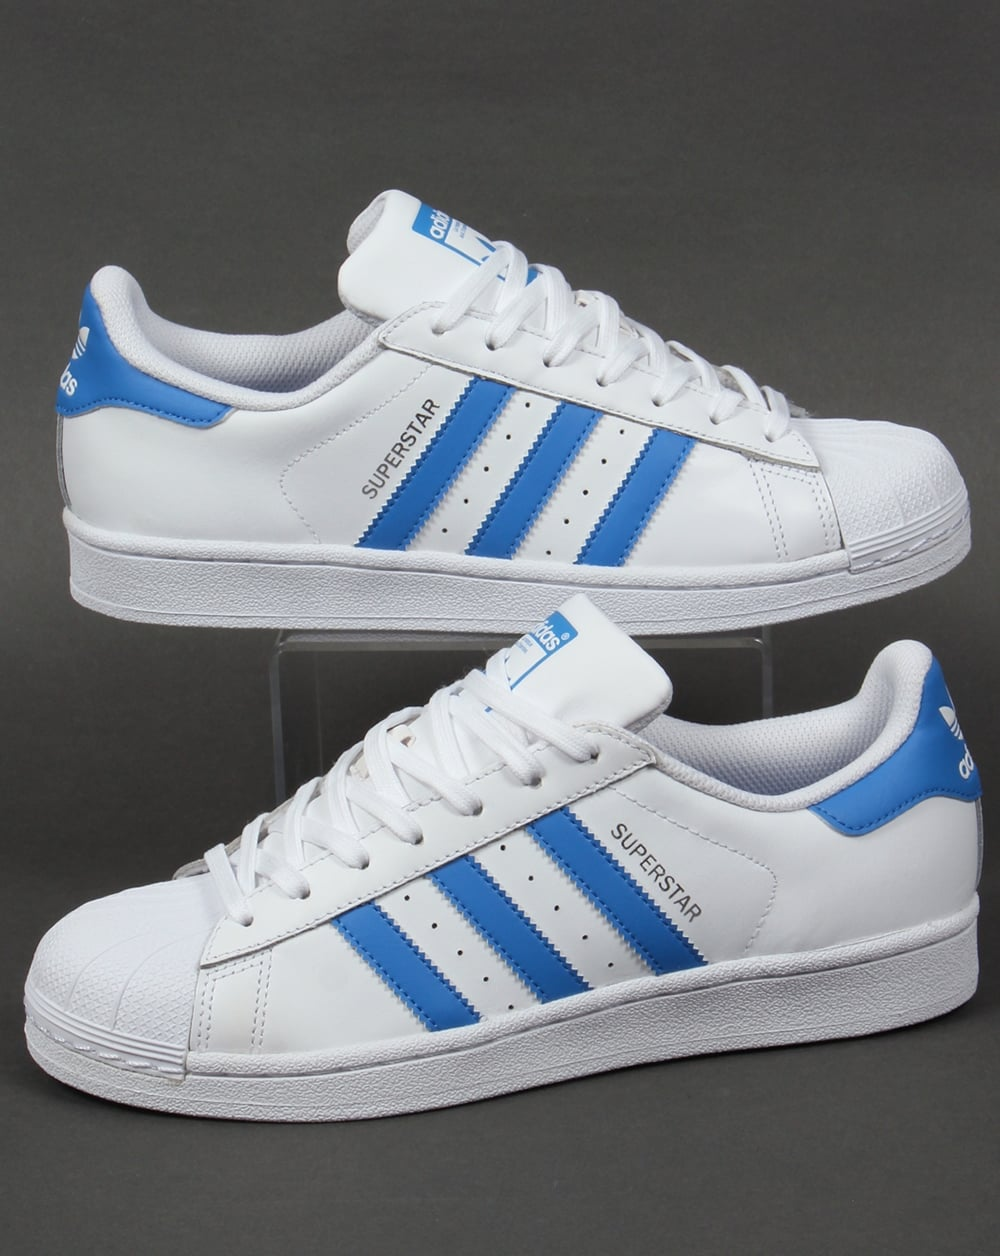 Buy Adidas Superstar Shoes